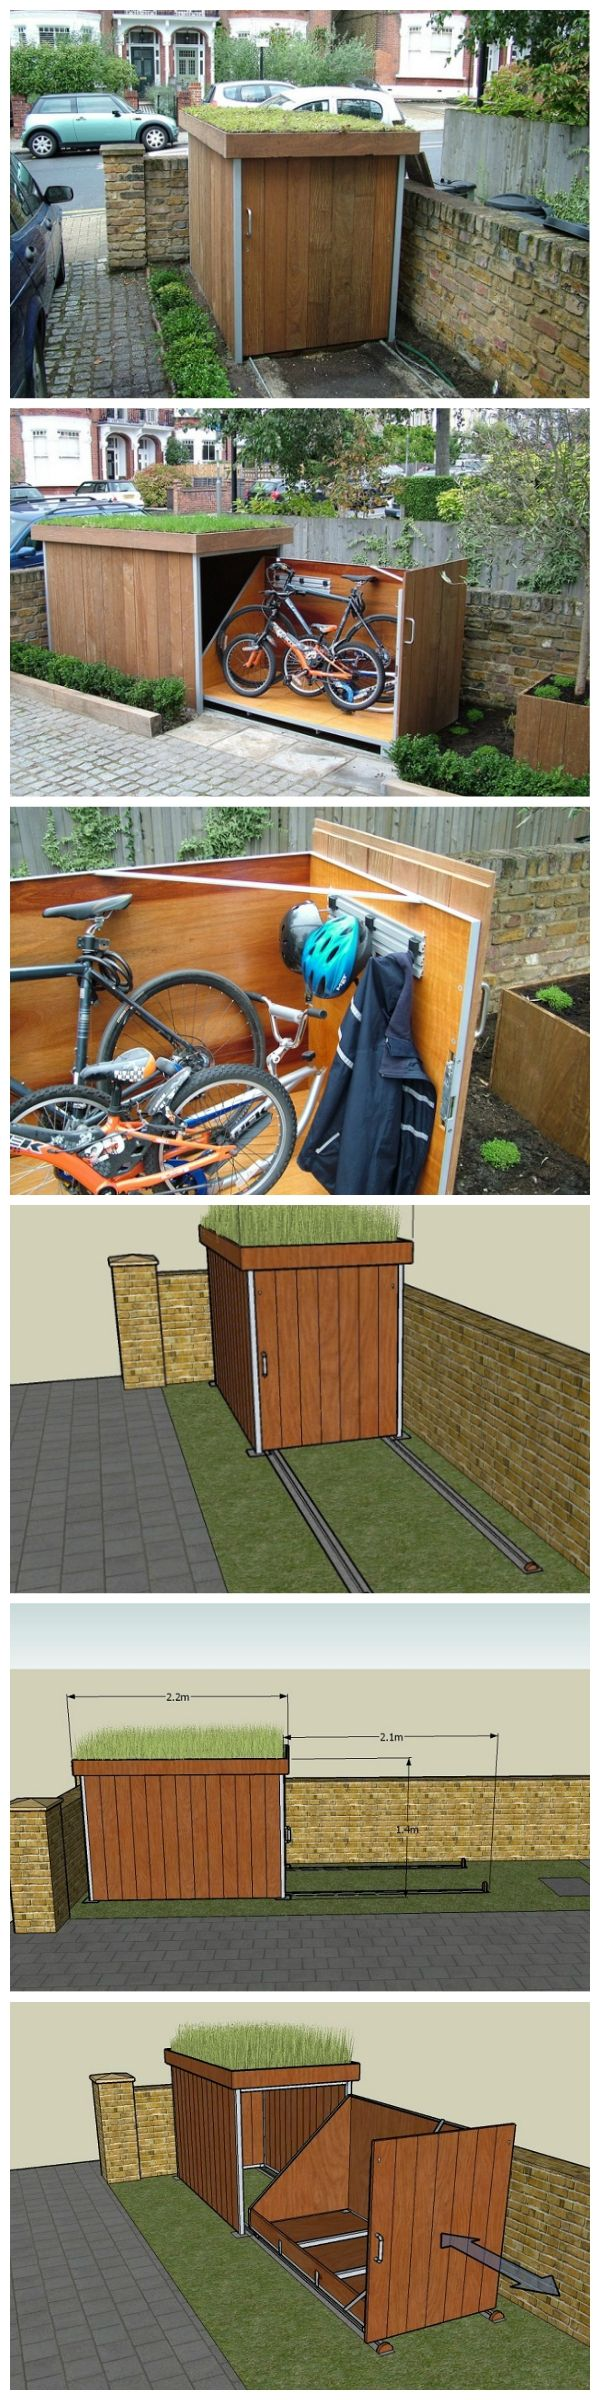 How To Build A Bike Storage Shed                              …